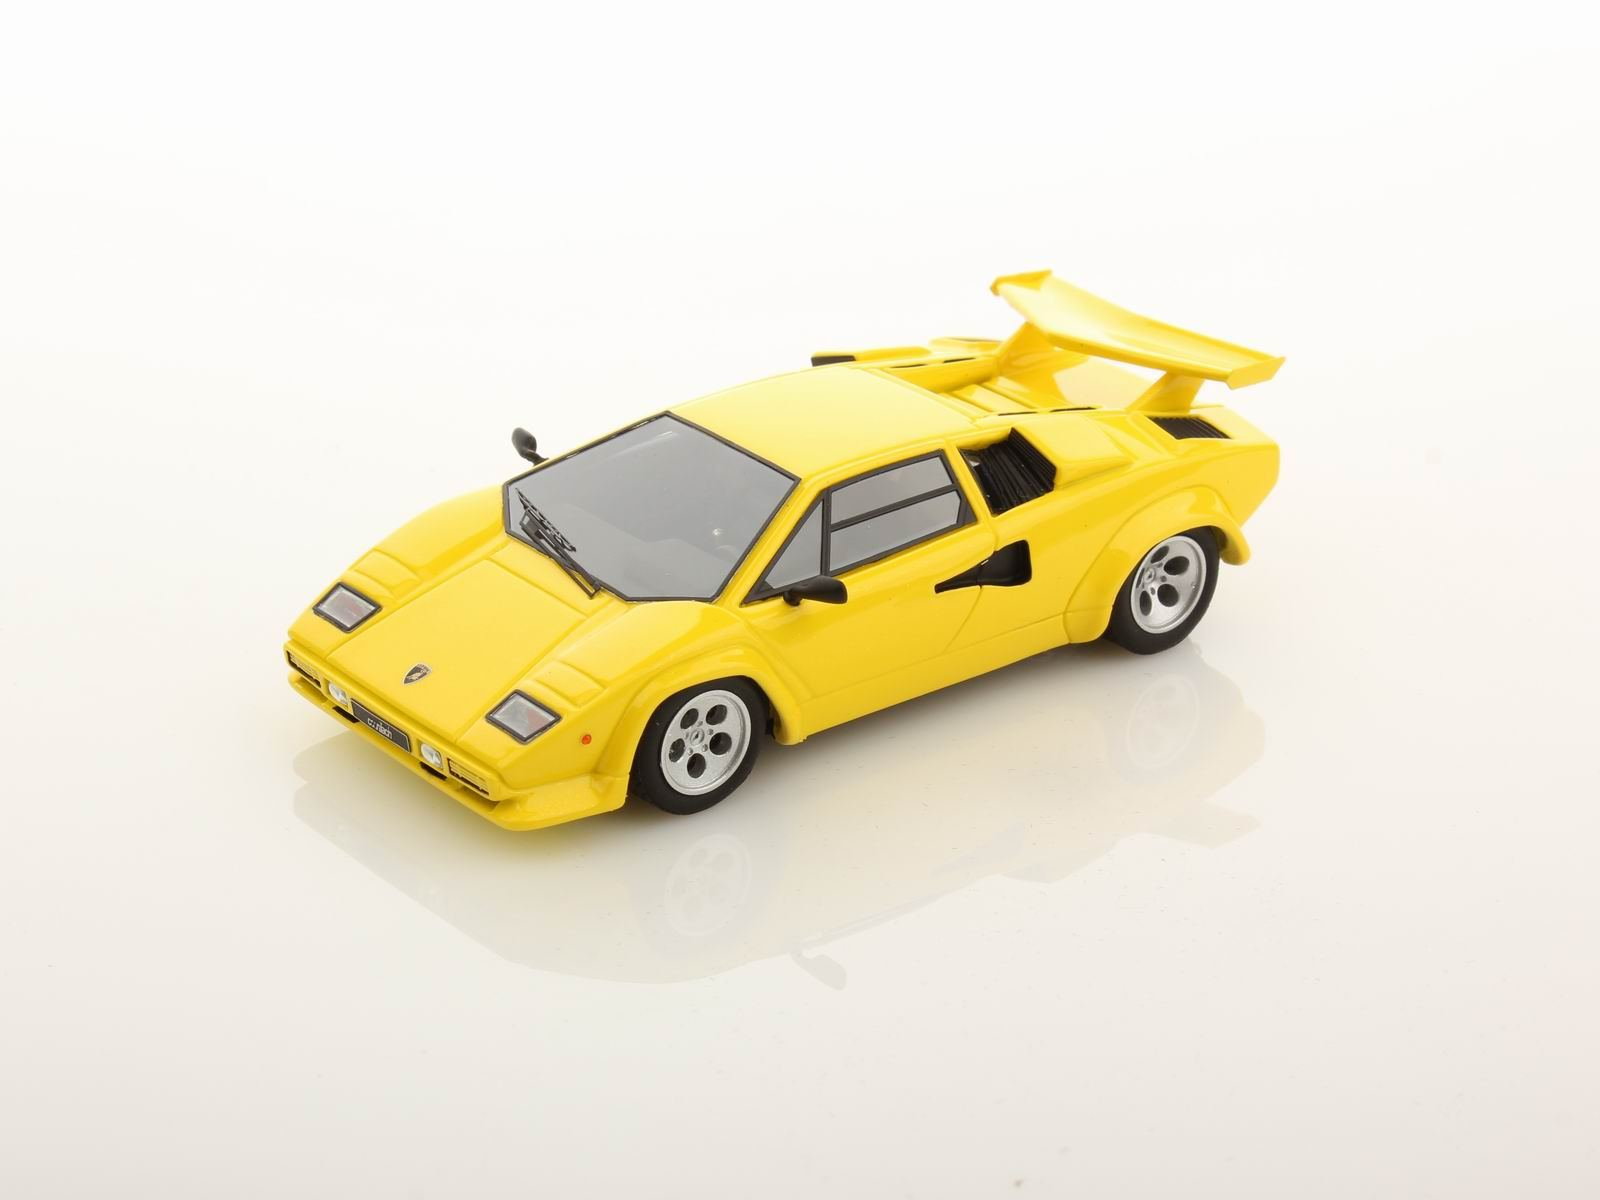 lamborghini countach lp 500s 1982 1 43 looksmart models. Black Bedroom Furniture Sets. Home Design Ideas